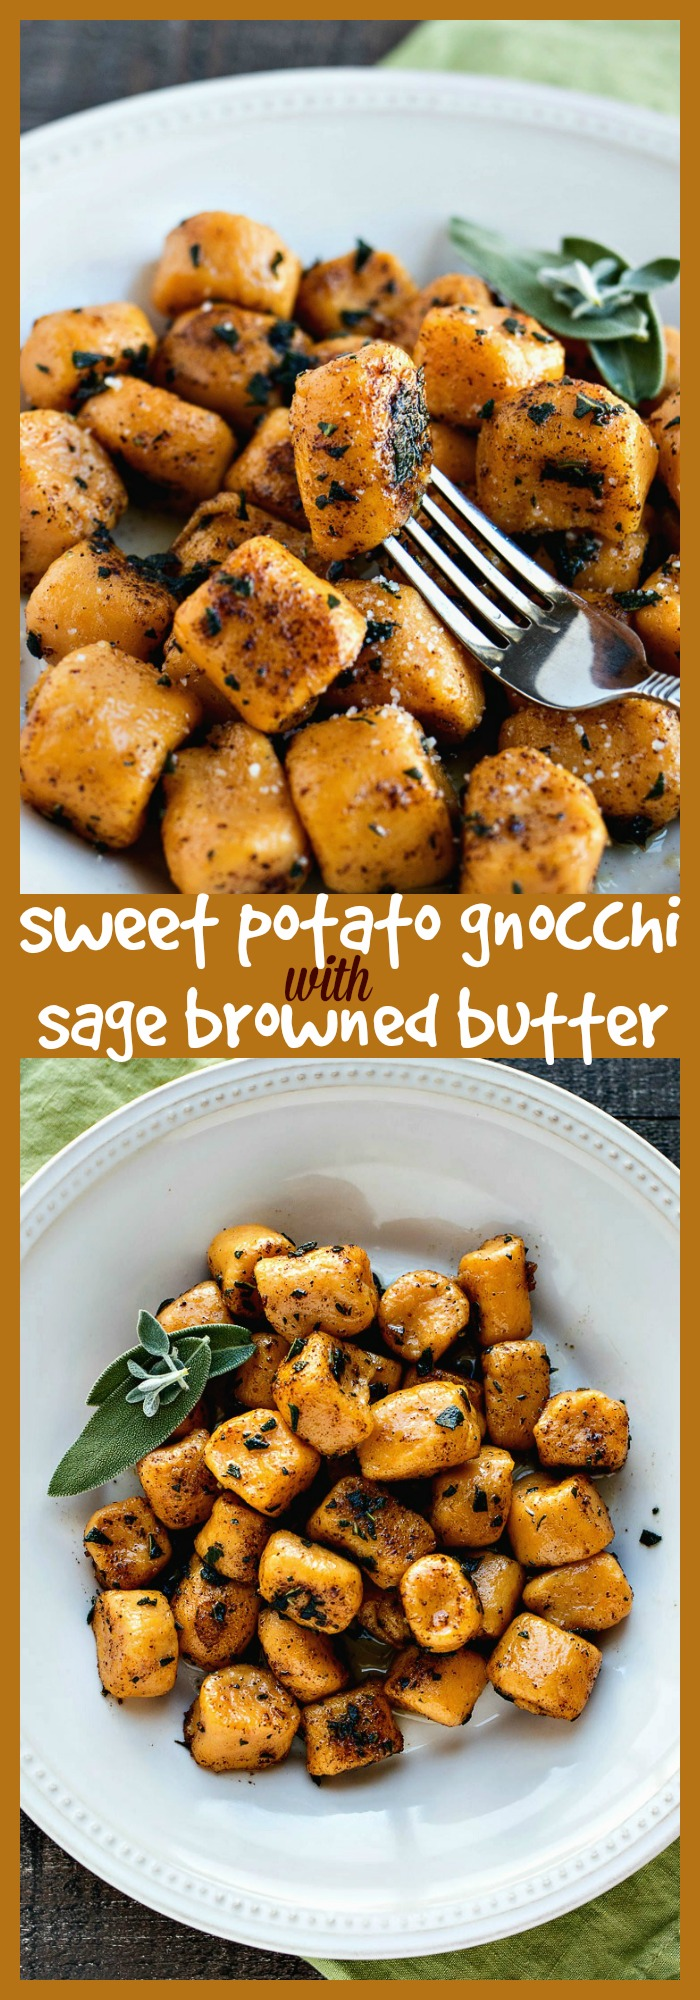 Sweet Potato Gnocchi with Sage Browned Butter photo collage